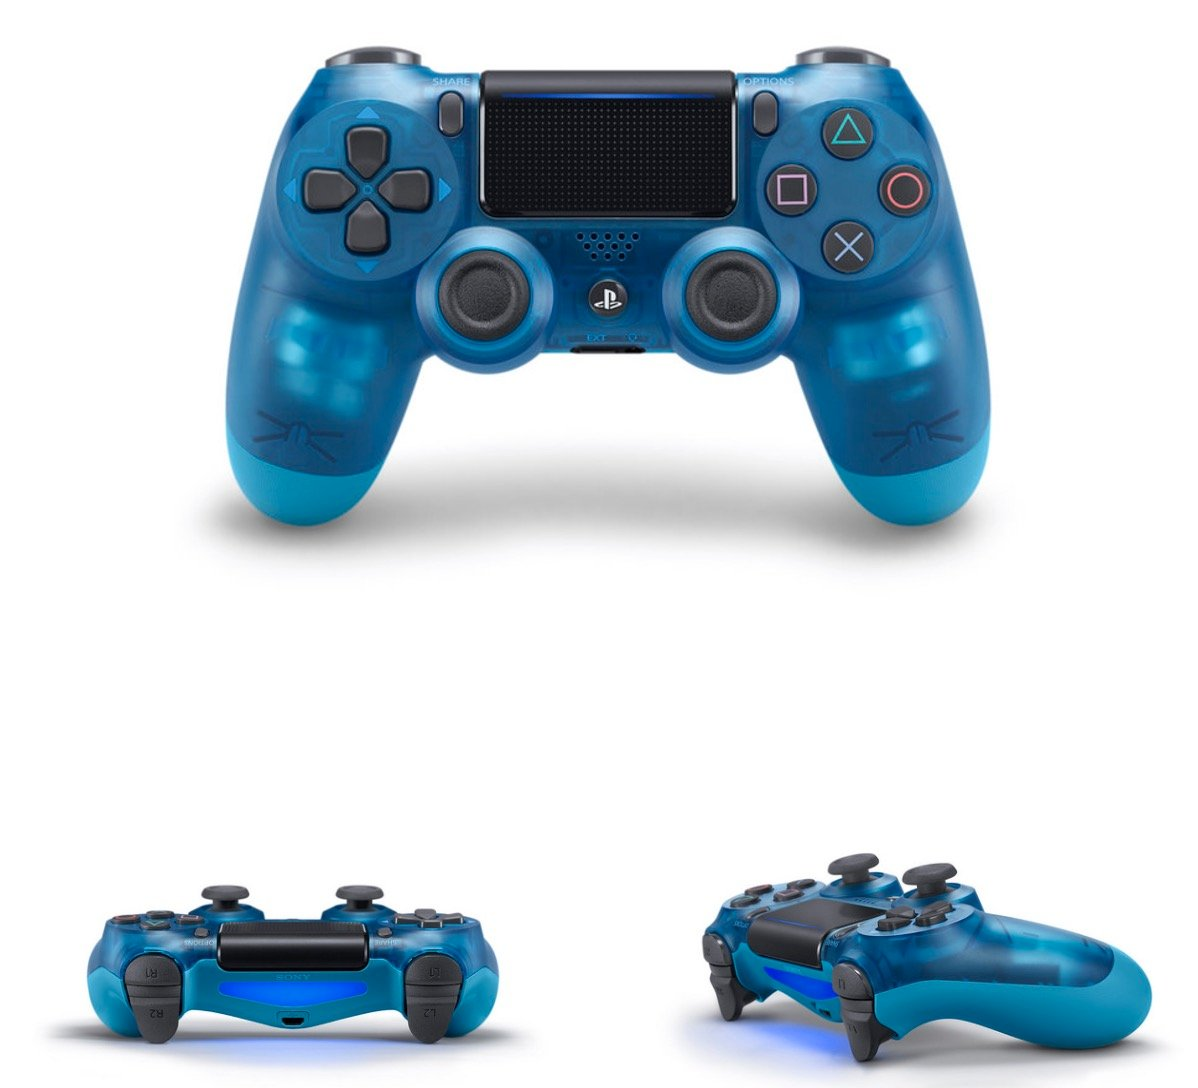 Sony's new 'Crystal' DualShock 4s are red, white and blue ...